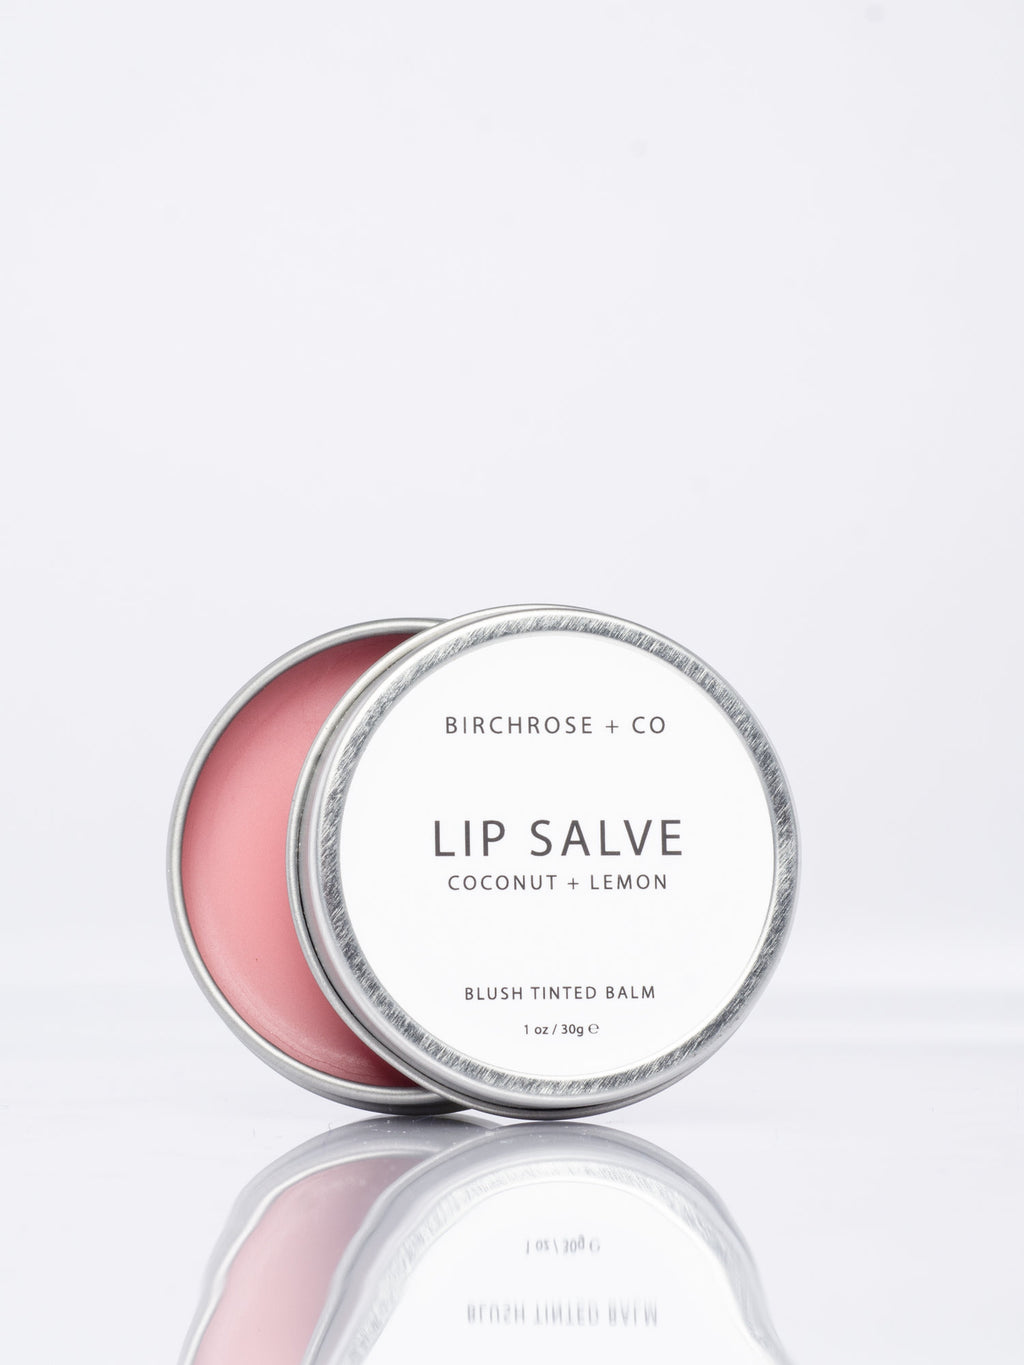 Birchrose Co - Lip Salve Coconut + Lemon